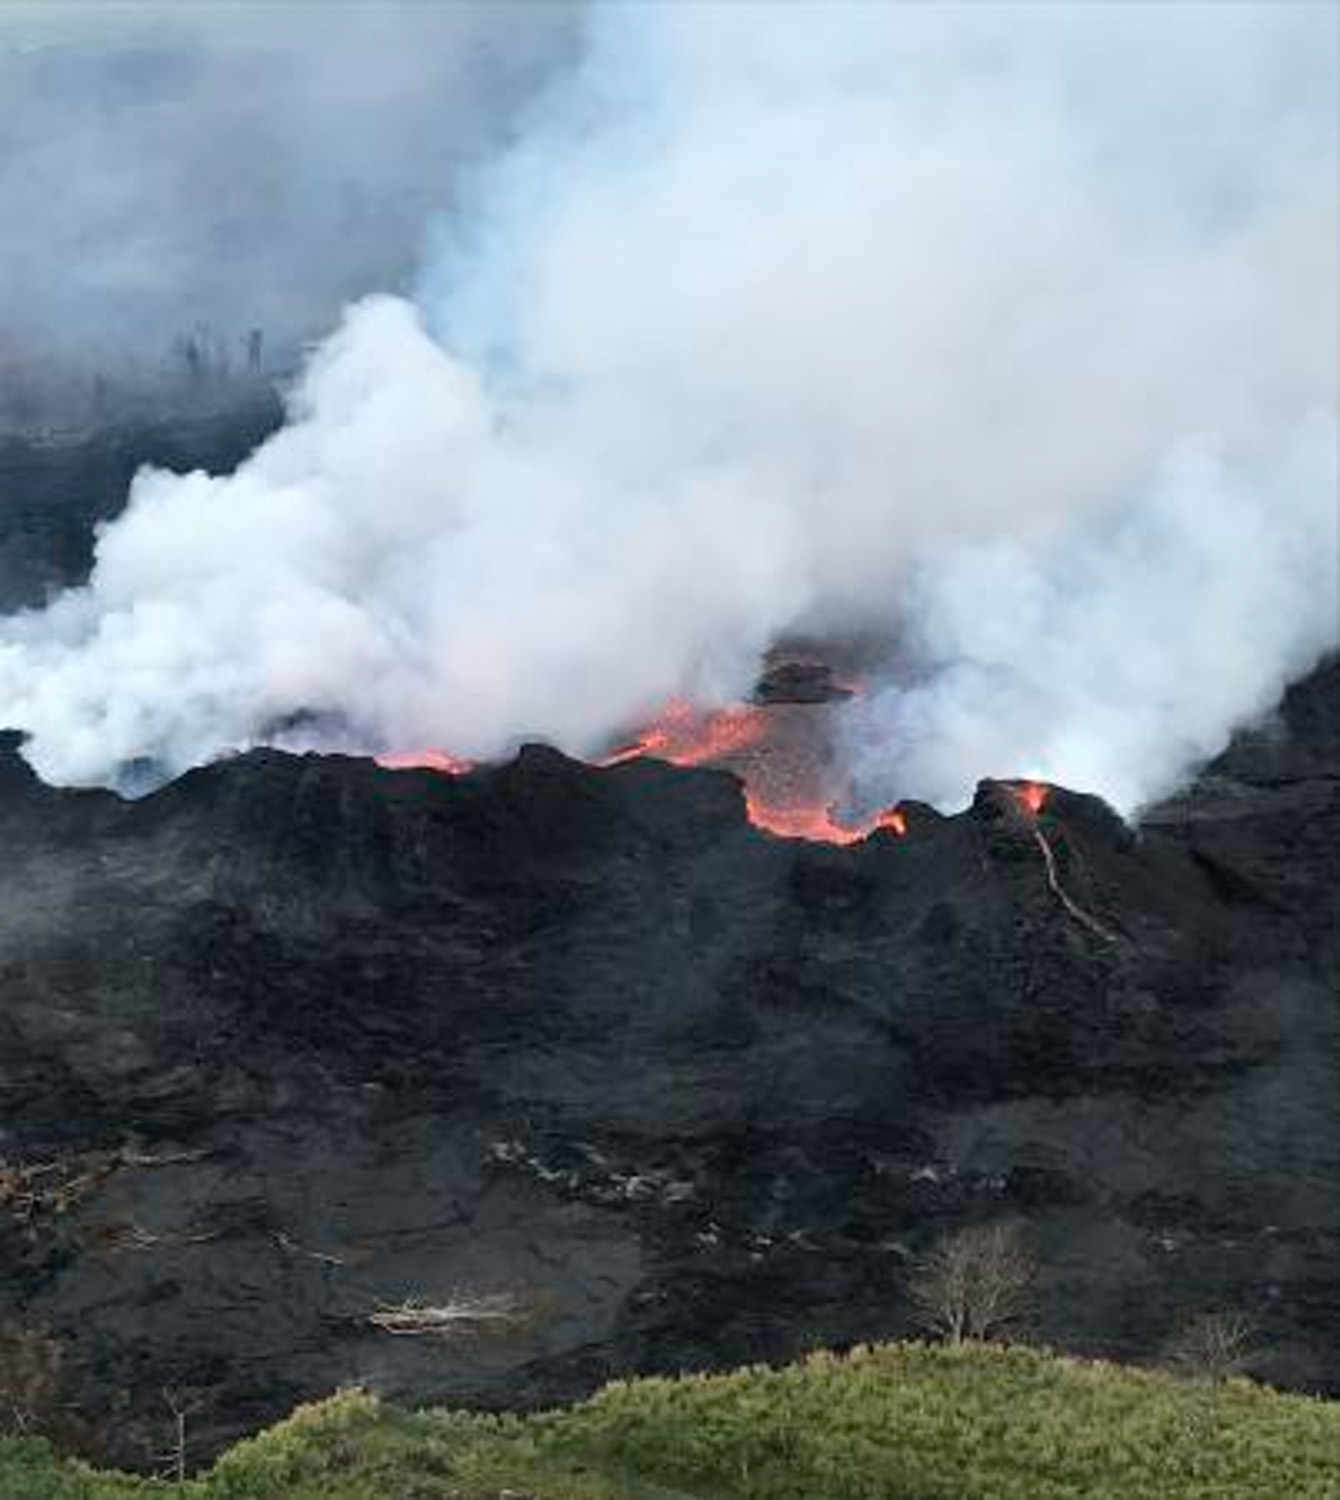 "<div class=""meta image-caption""><div class=""origin-logo origin-image none""><span>none</span></div><span class=""caption-text"">An aerial view of fissure 22 looking toward the south, as Kilauea Volcano continues its eruption cycle near Pahoa on the island of Kilauea, Hawaii. (U.S. Geological Survey via AP)</span></div>"